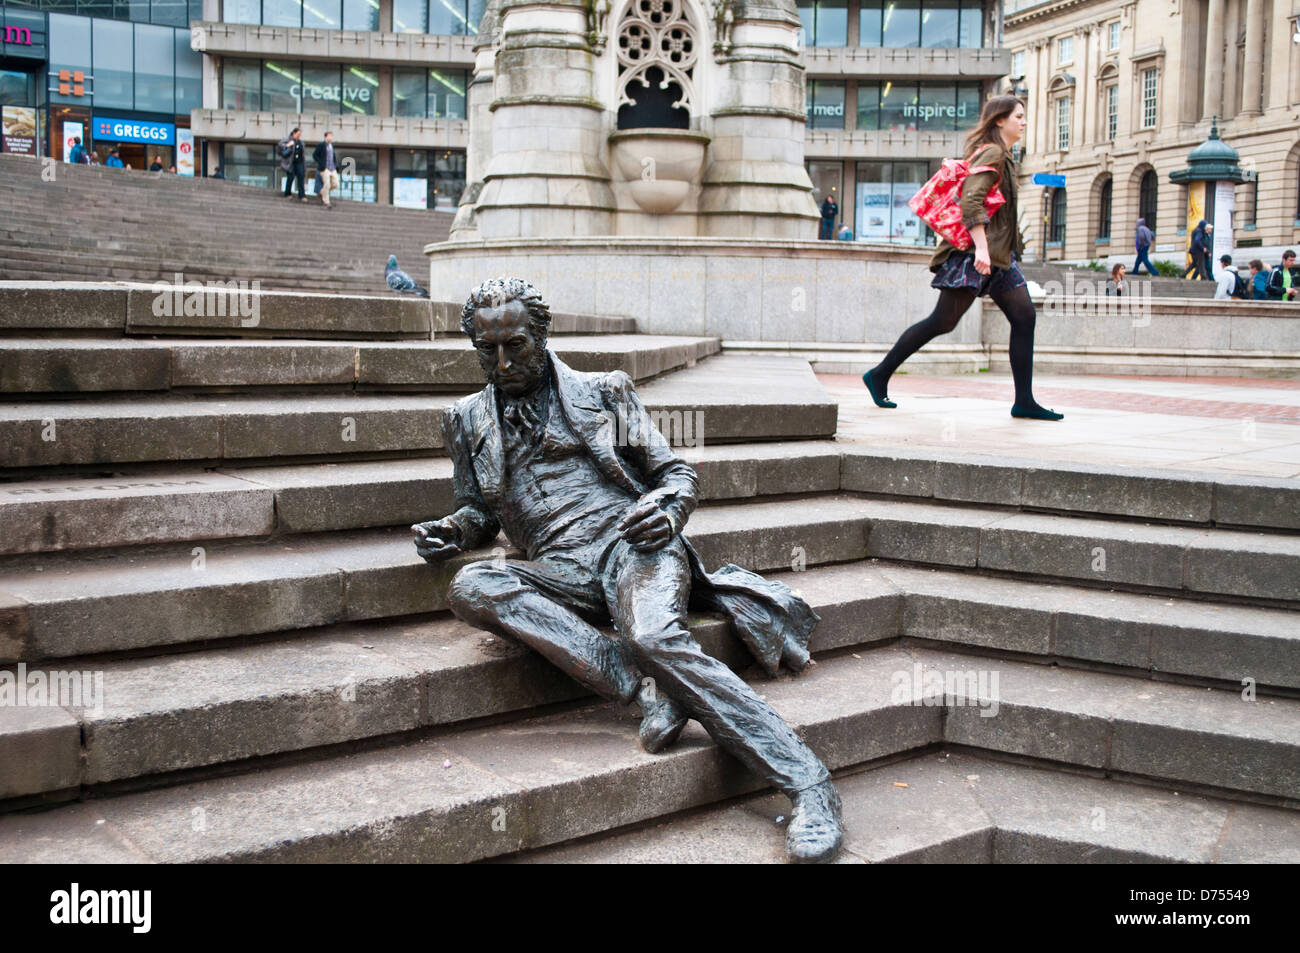 Thomas Attwood bronze sculpture on steps, Chamberlain Square, Birmingham, UK - Stock Image